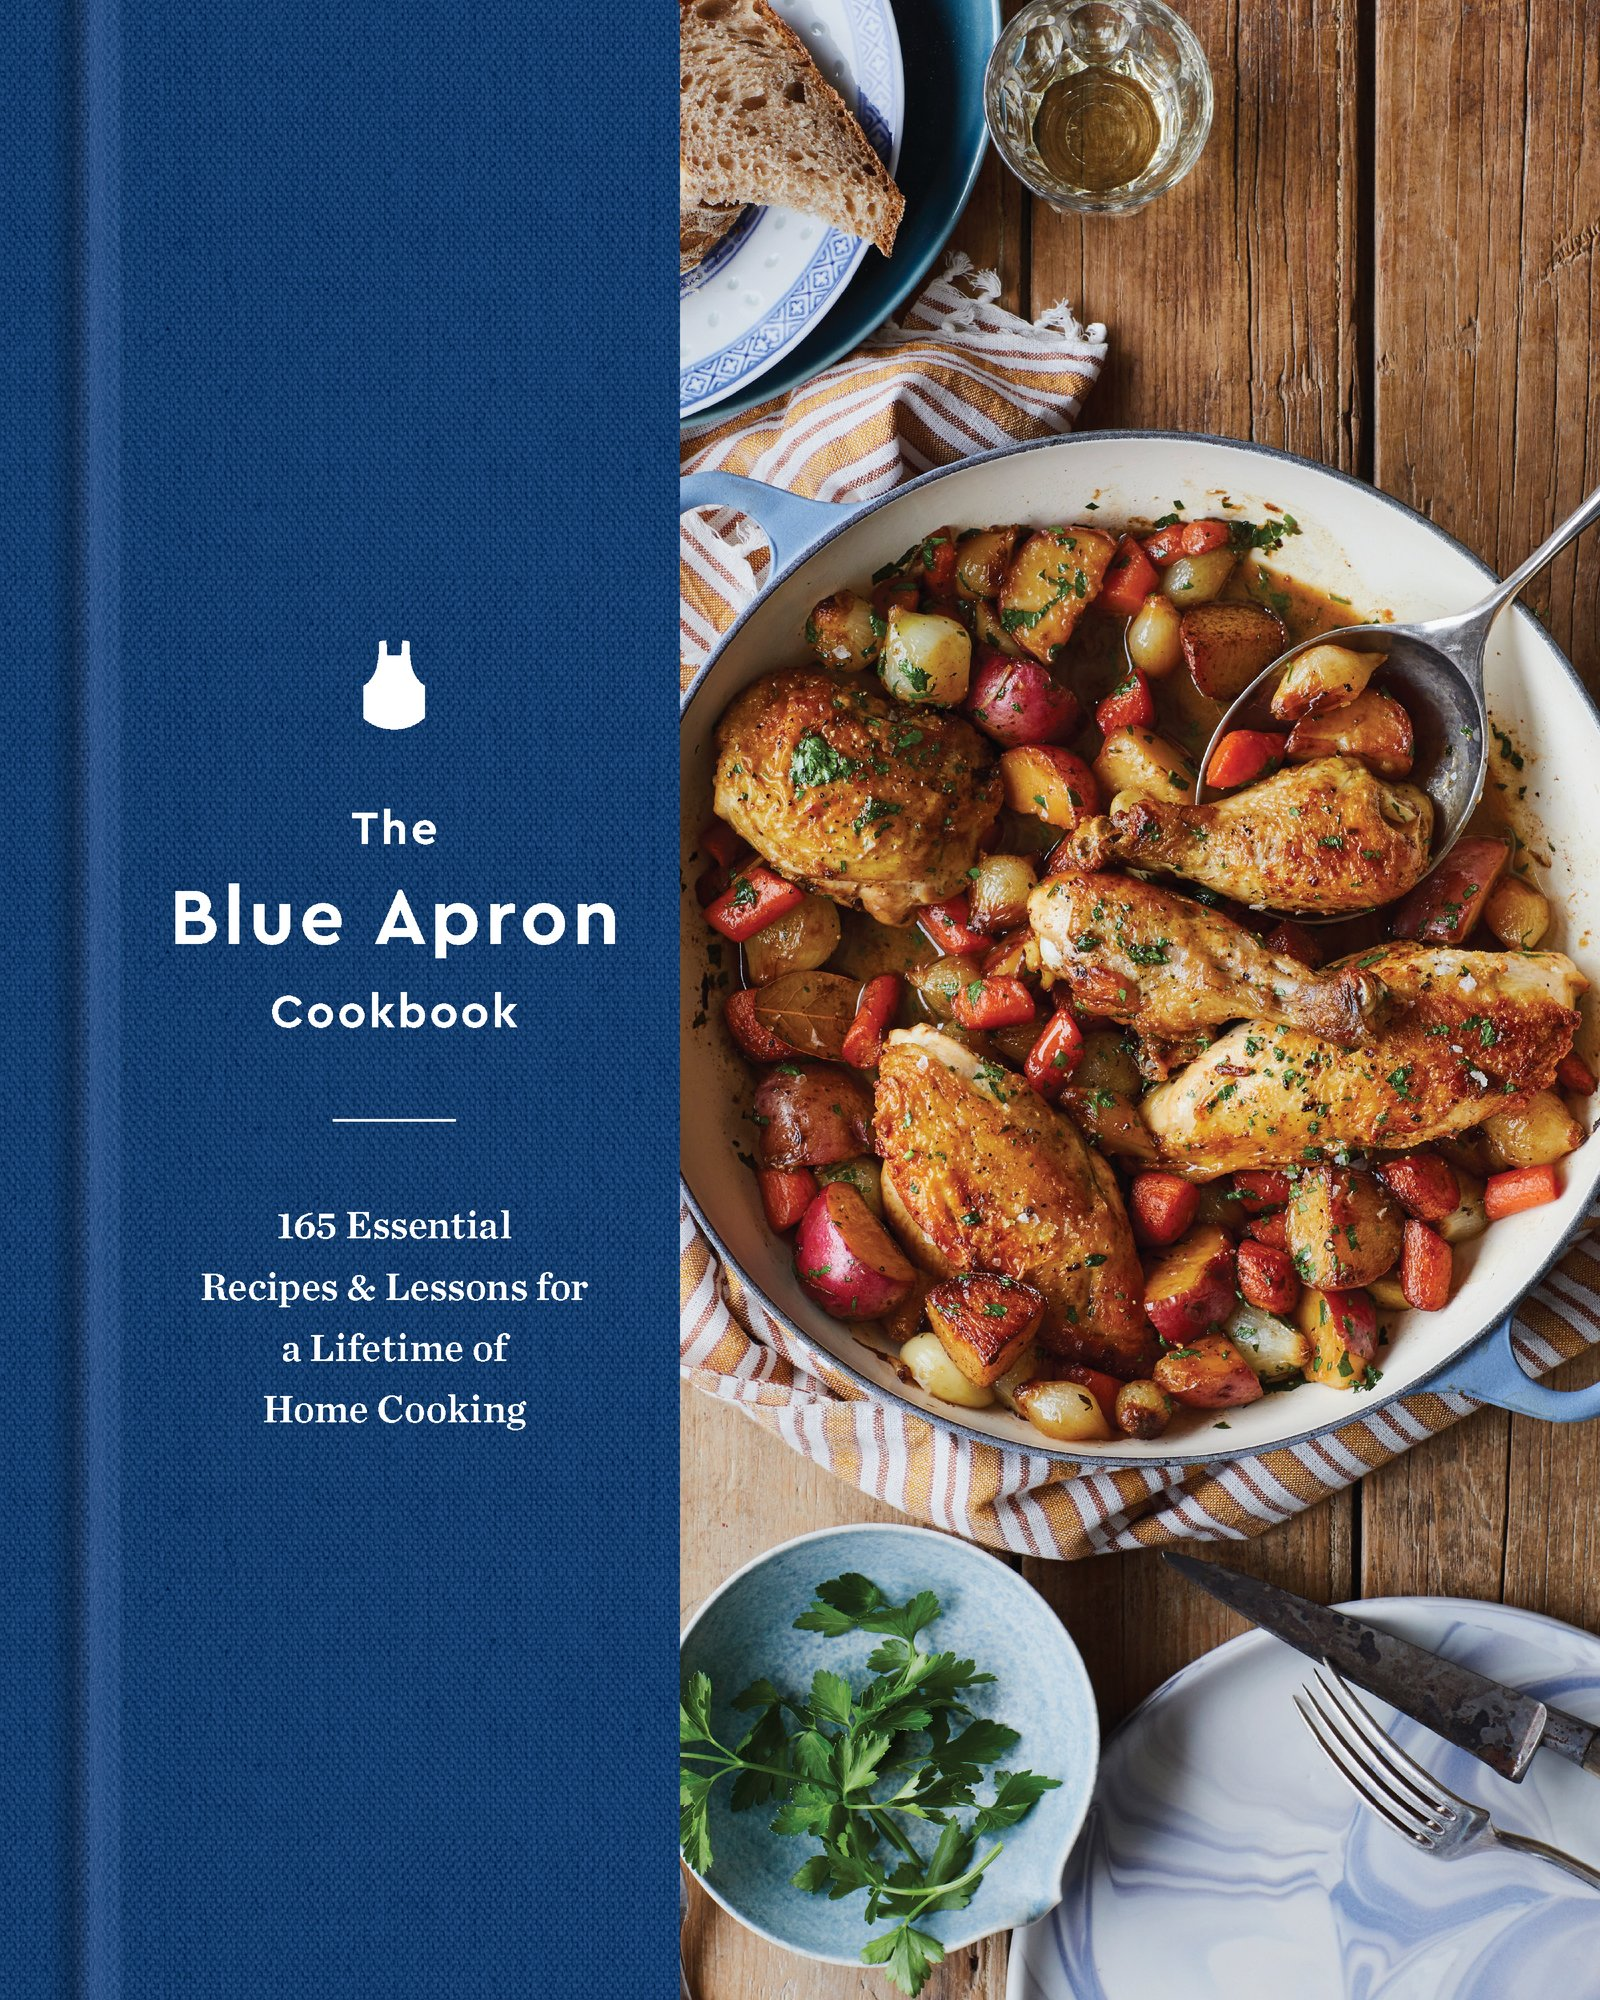 Blue apron cookbook - The Blue Apron Cookbook 165 Essential Recipes And Lessons For A Lifetime Of Home Cooking Blue Apron Culinary Team 9780062562760 Amazon Com Books